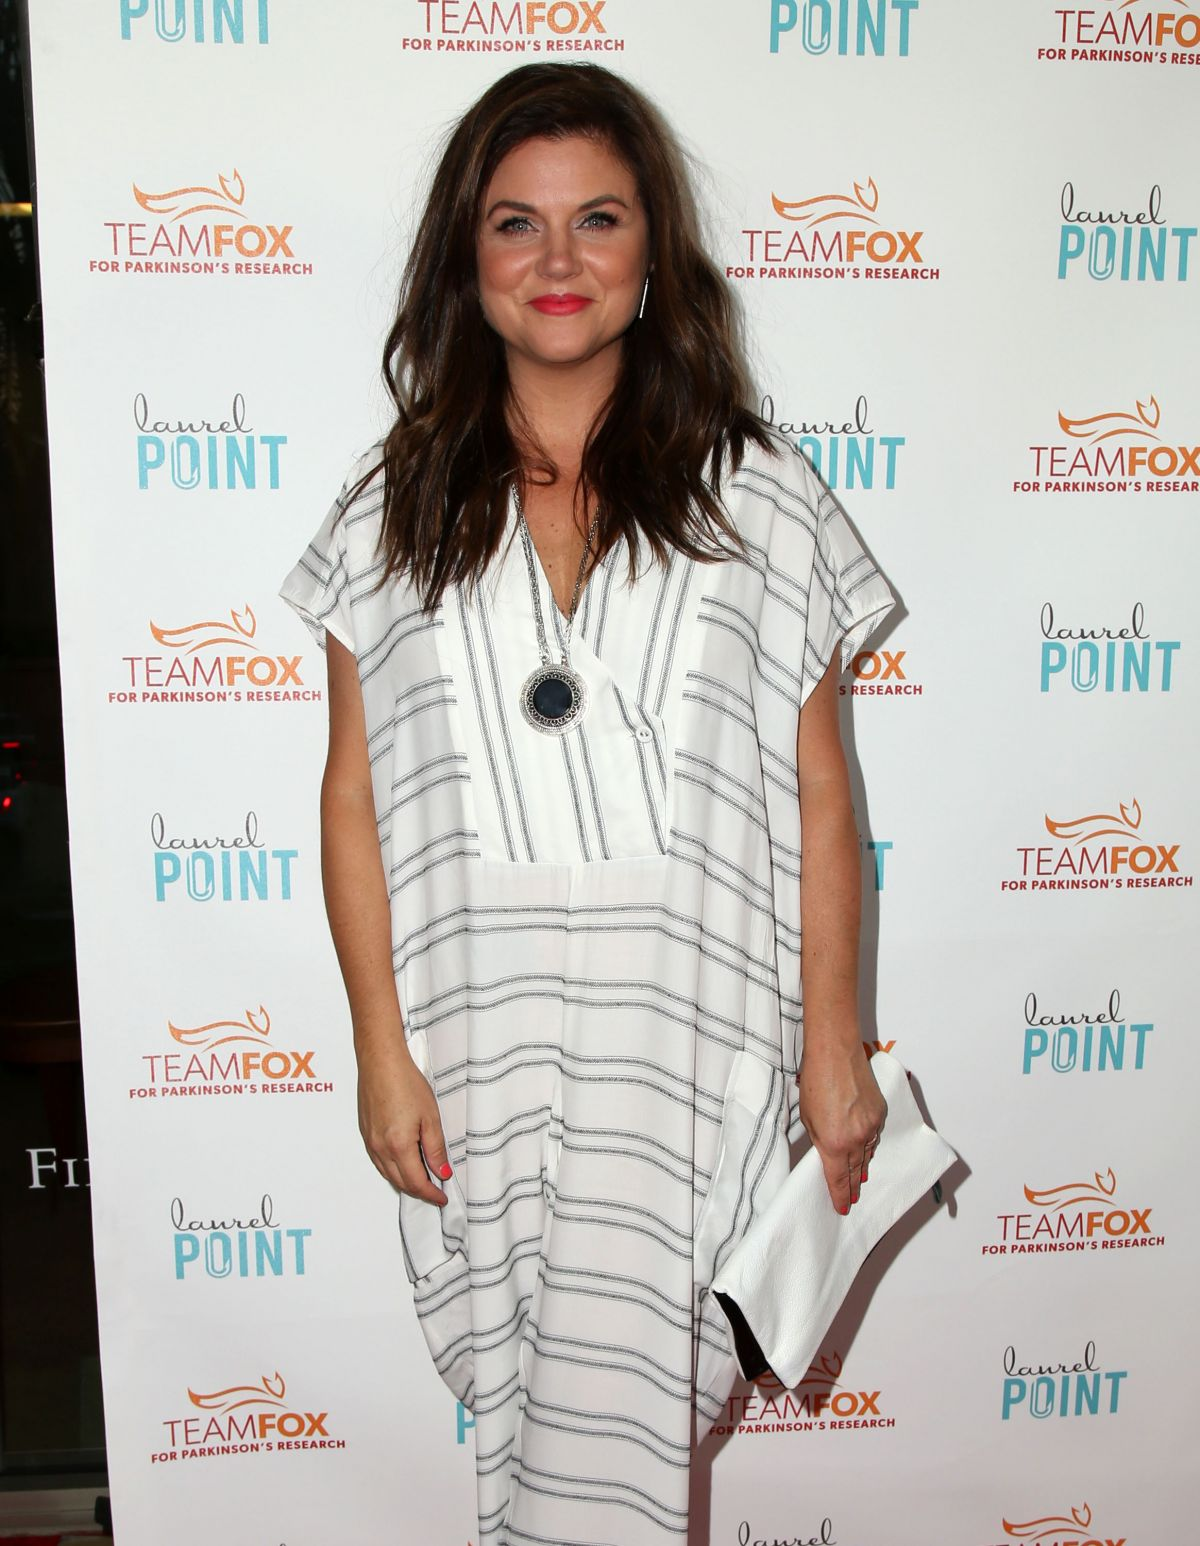 TIFFANI THIESSEN at Raising the Bar to End Parkinson's Event in Studio City 07/27/2016